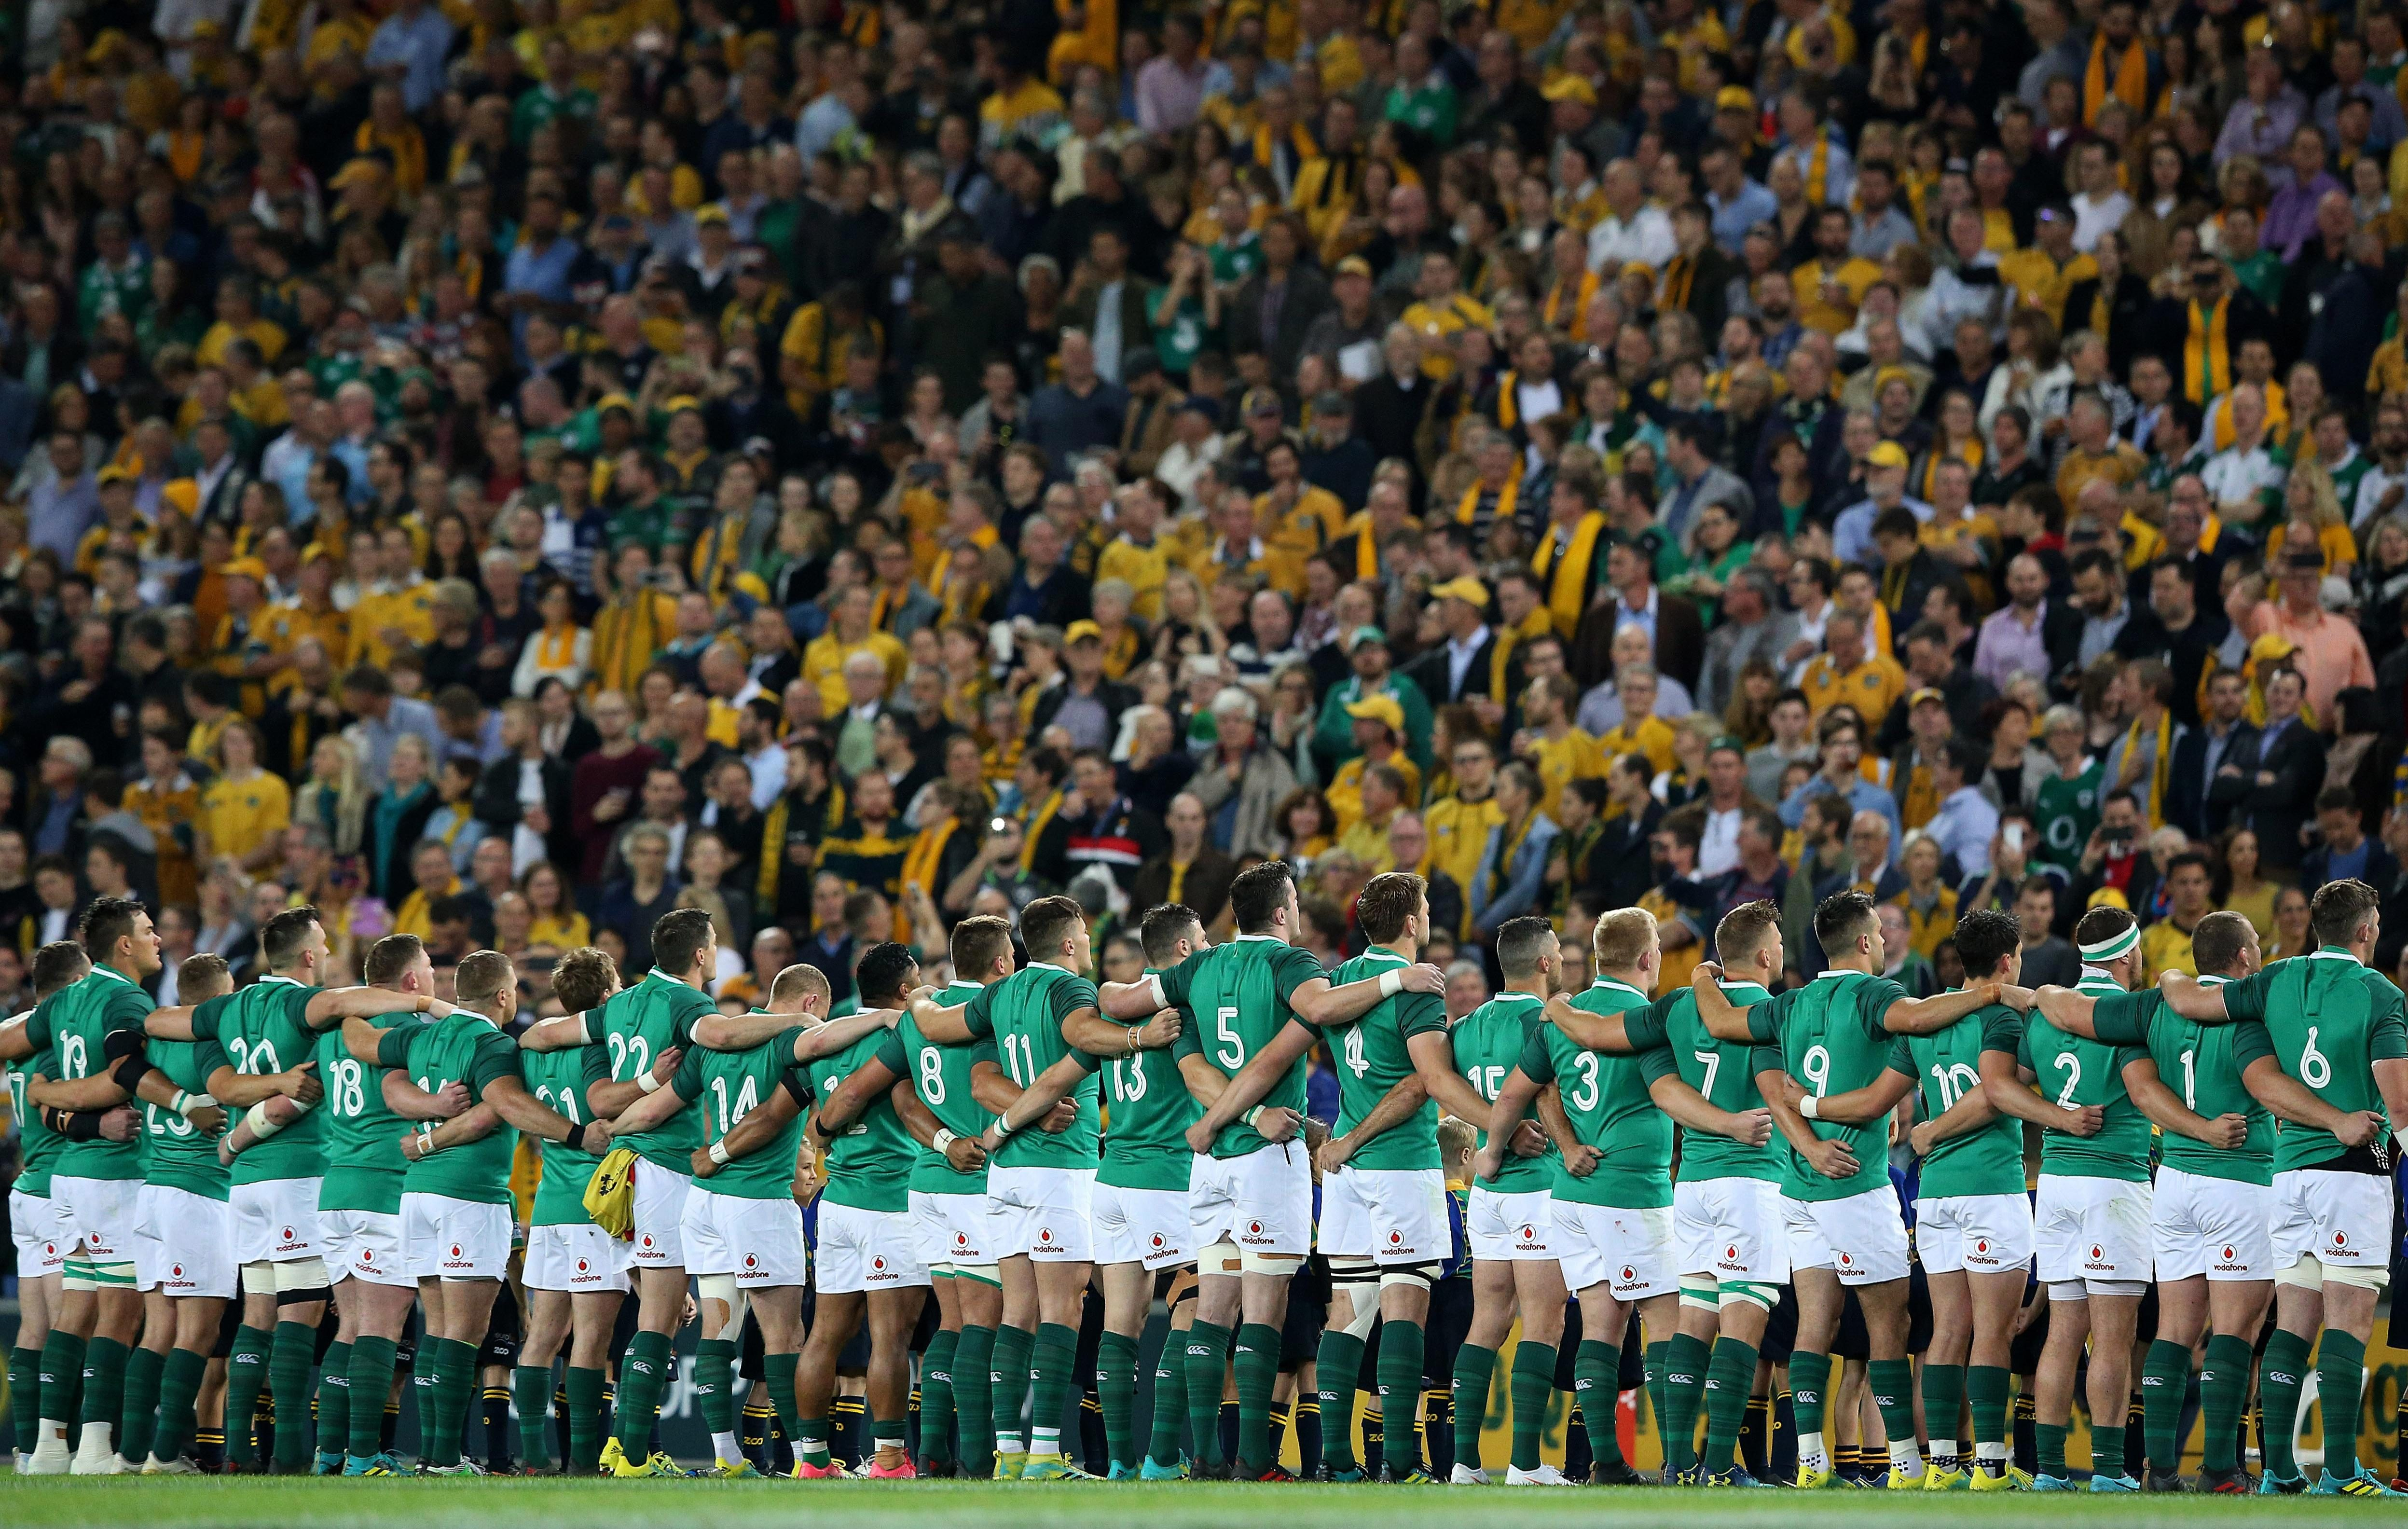 A big Irish crowd turned up in Brisbane as they belted out the anthems